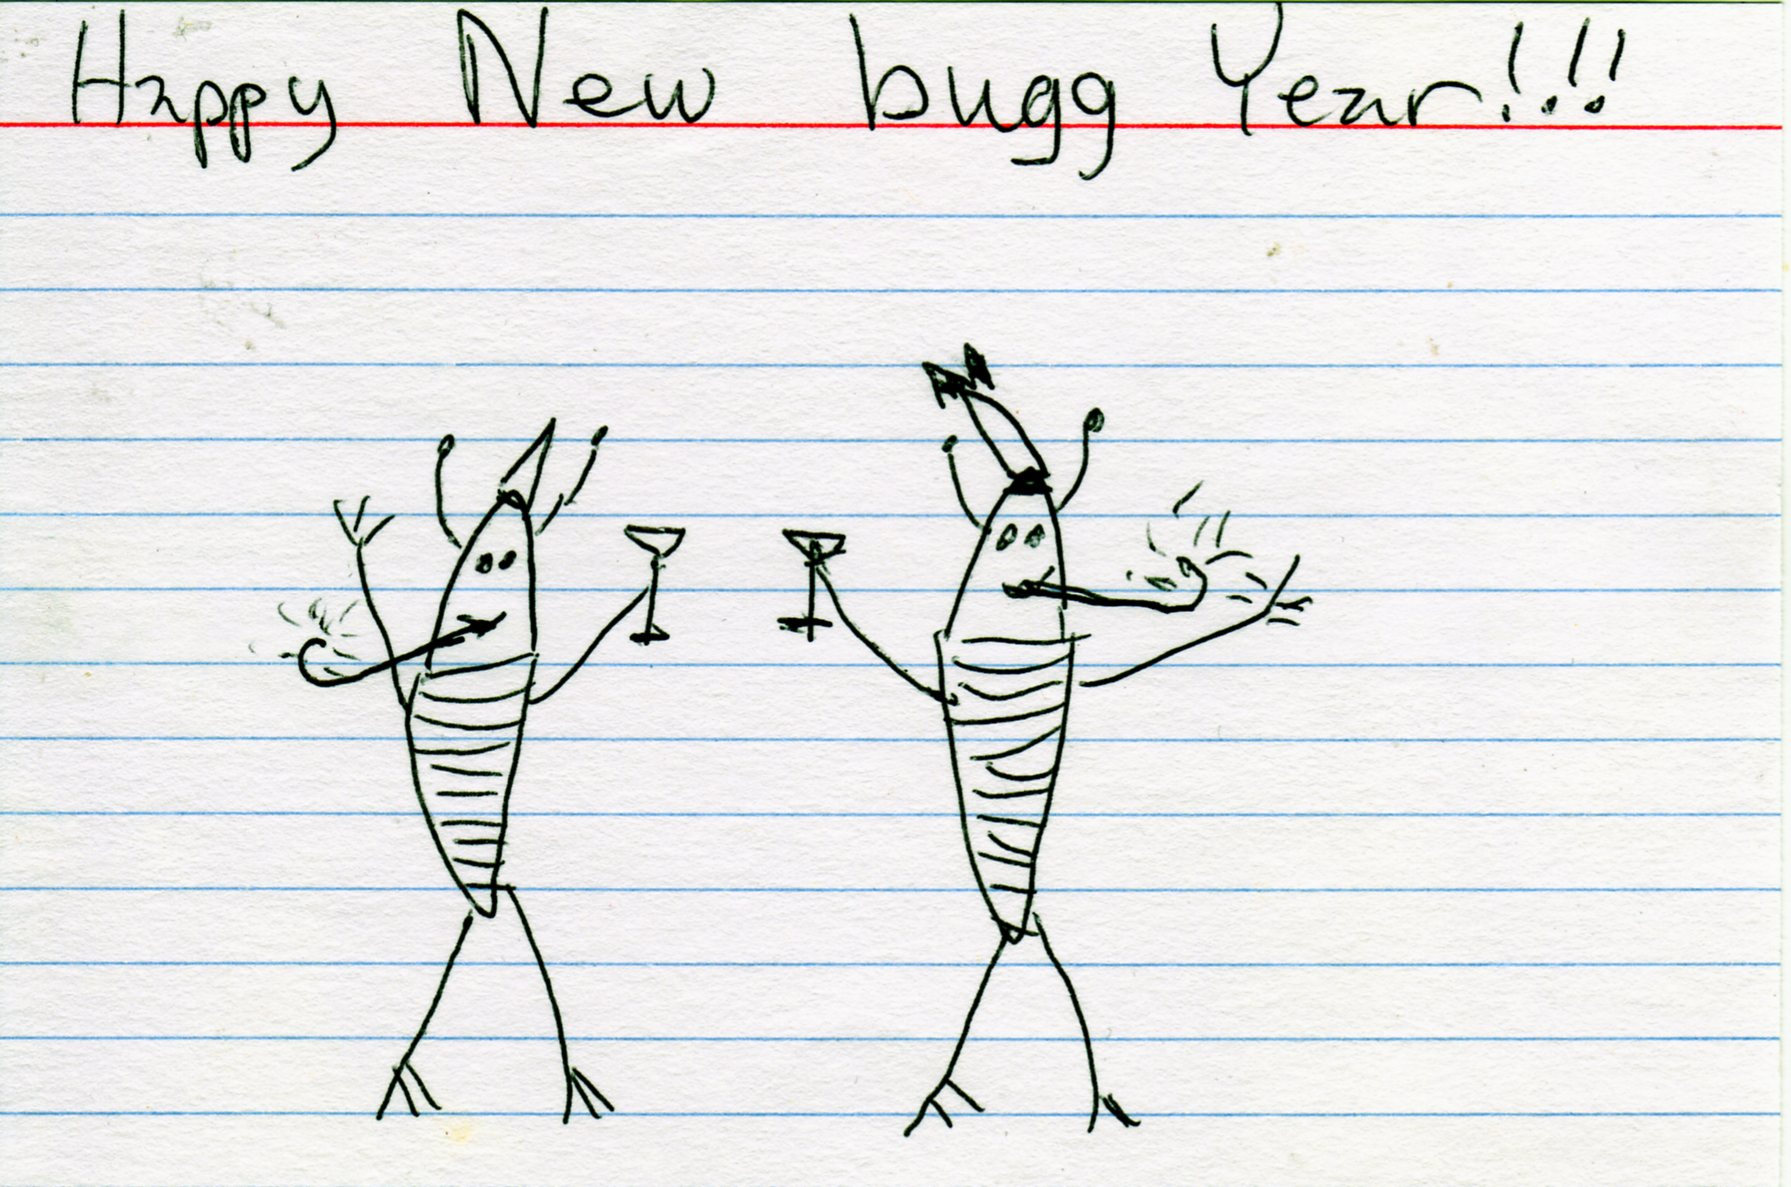 new bugg year [click to embiggen]